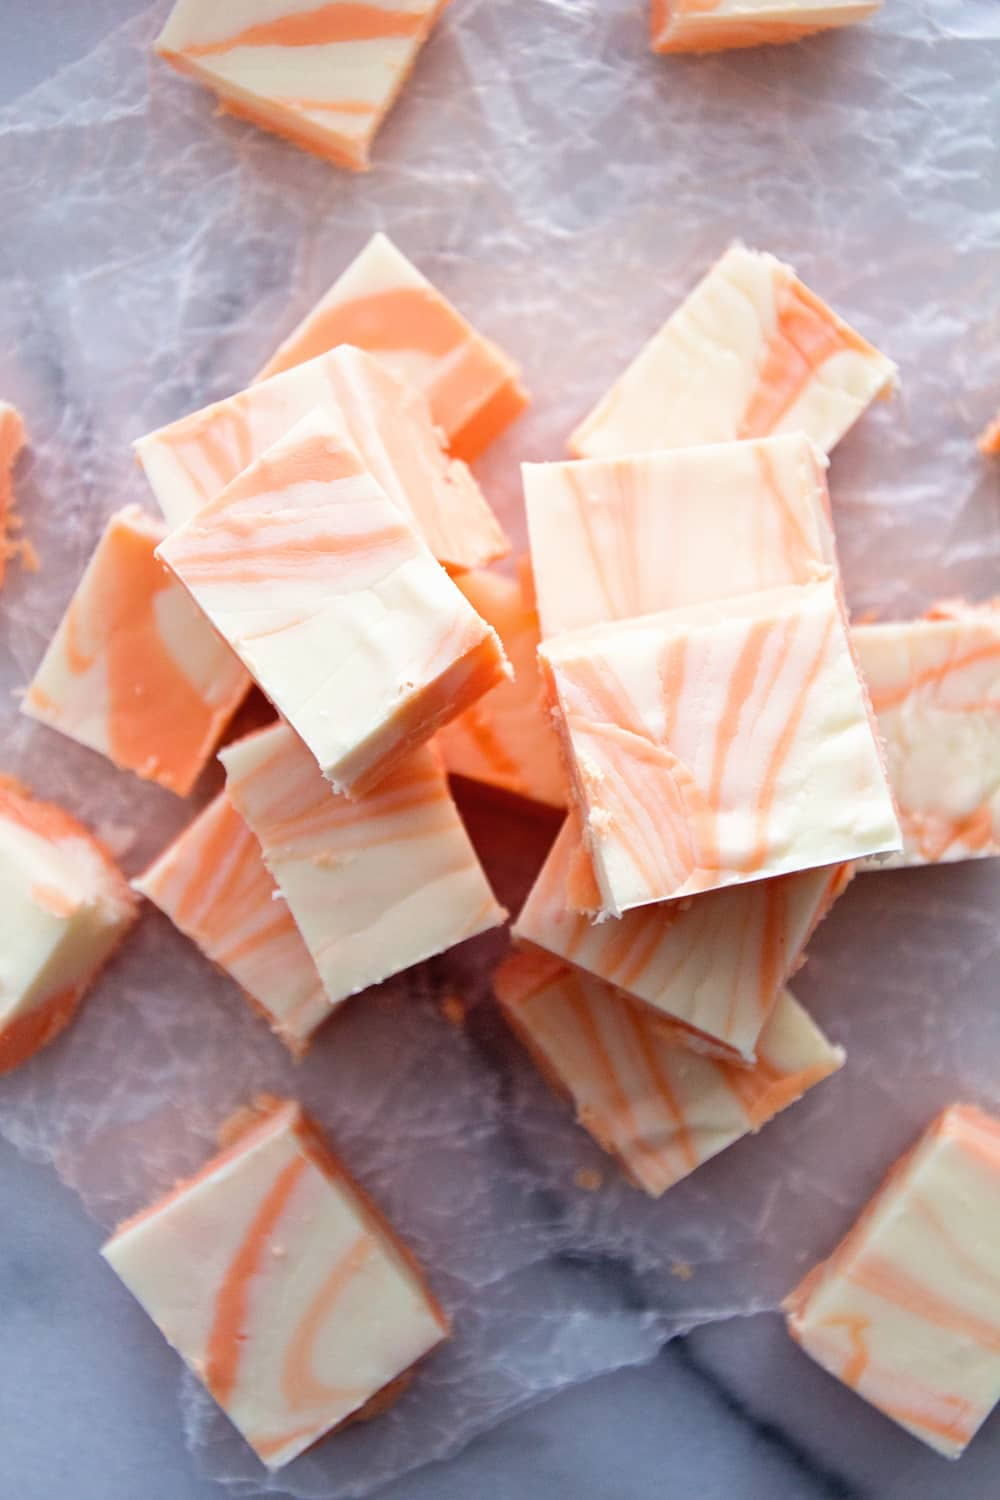 Easy Orange Creamsicle Fudge ~ This Fool Proof Fudge will have everyone thinking you slaved over it! Super Simple, Smooth, Creamy Fudge!